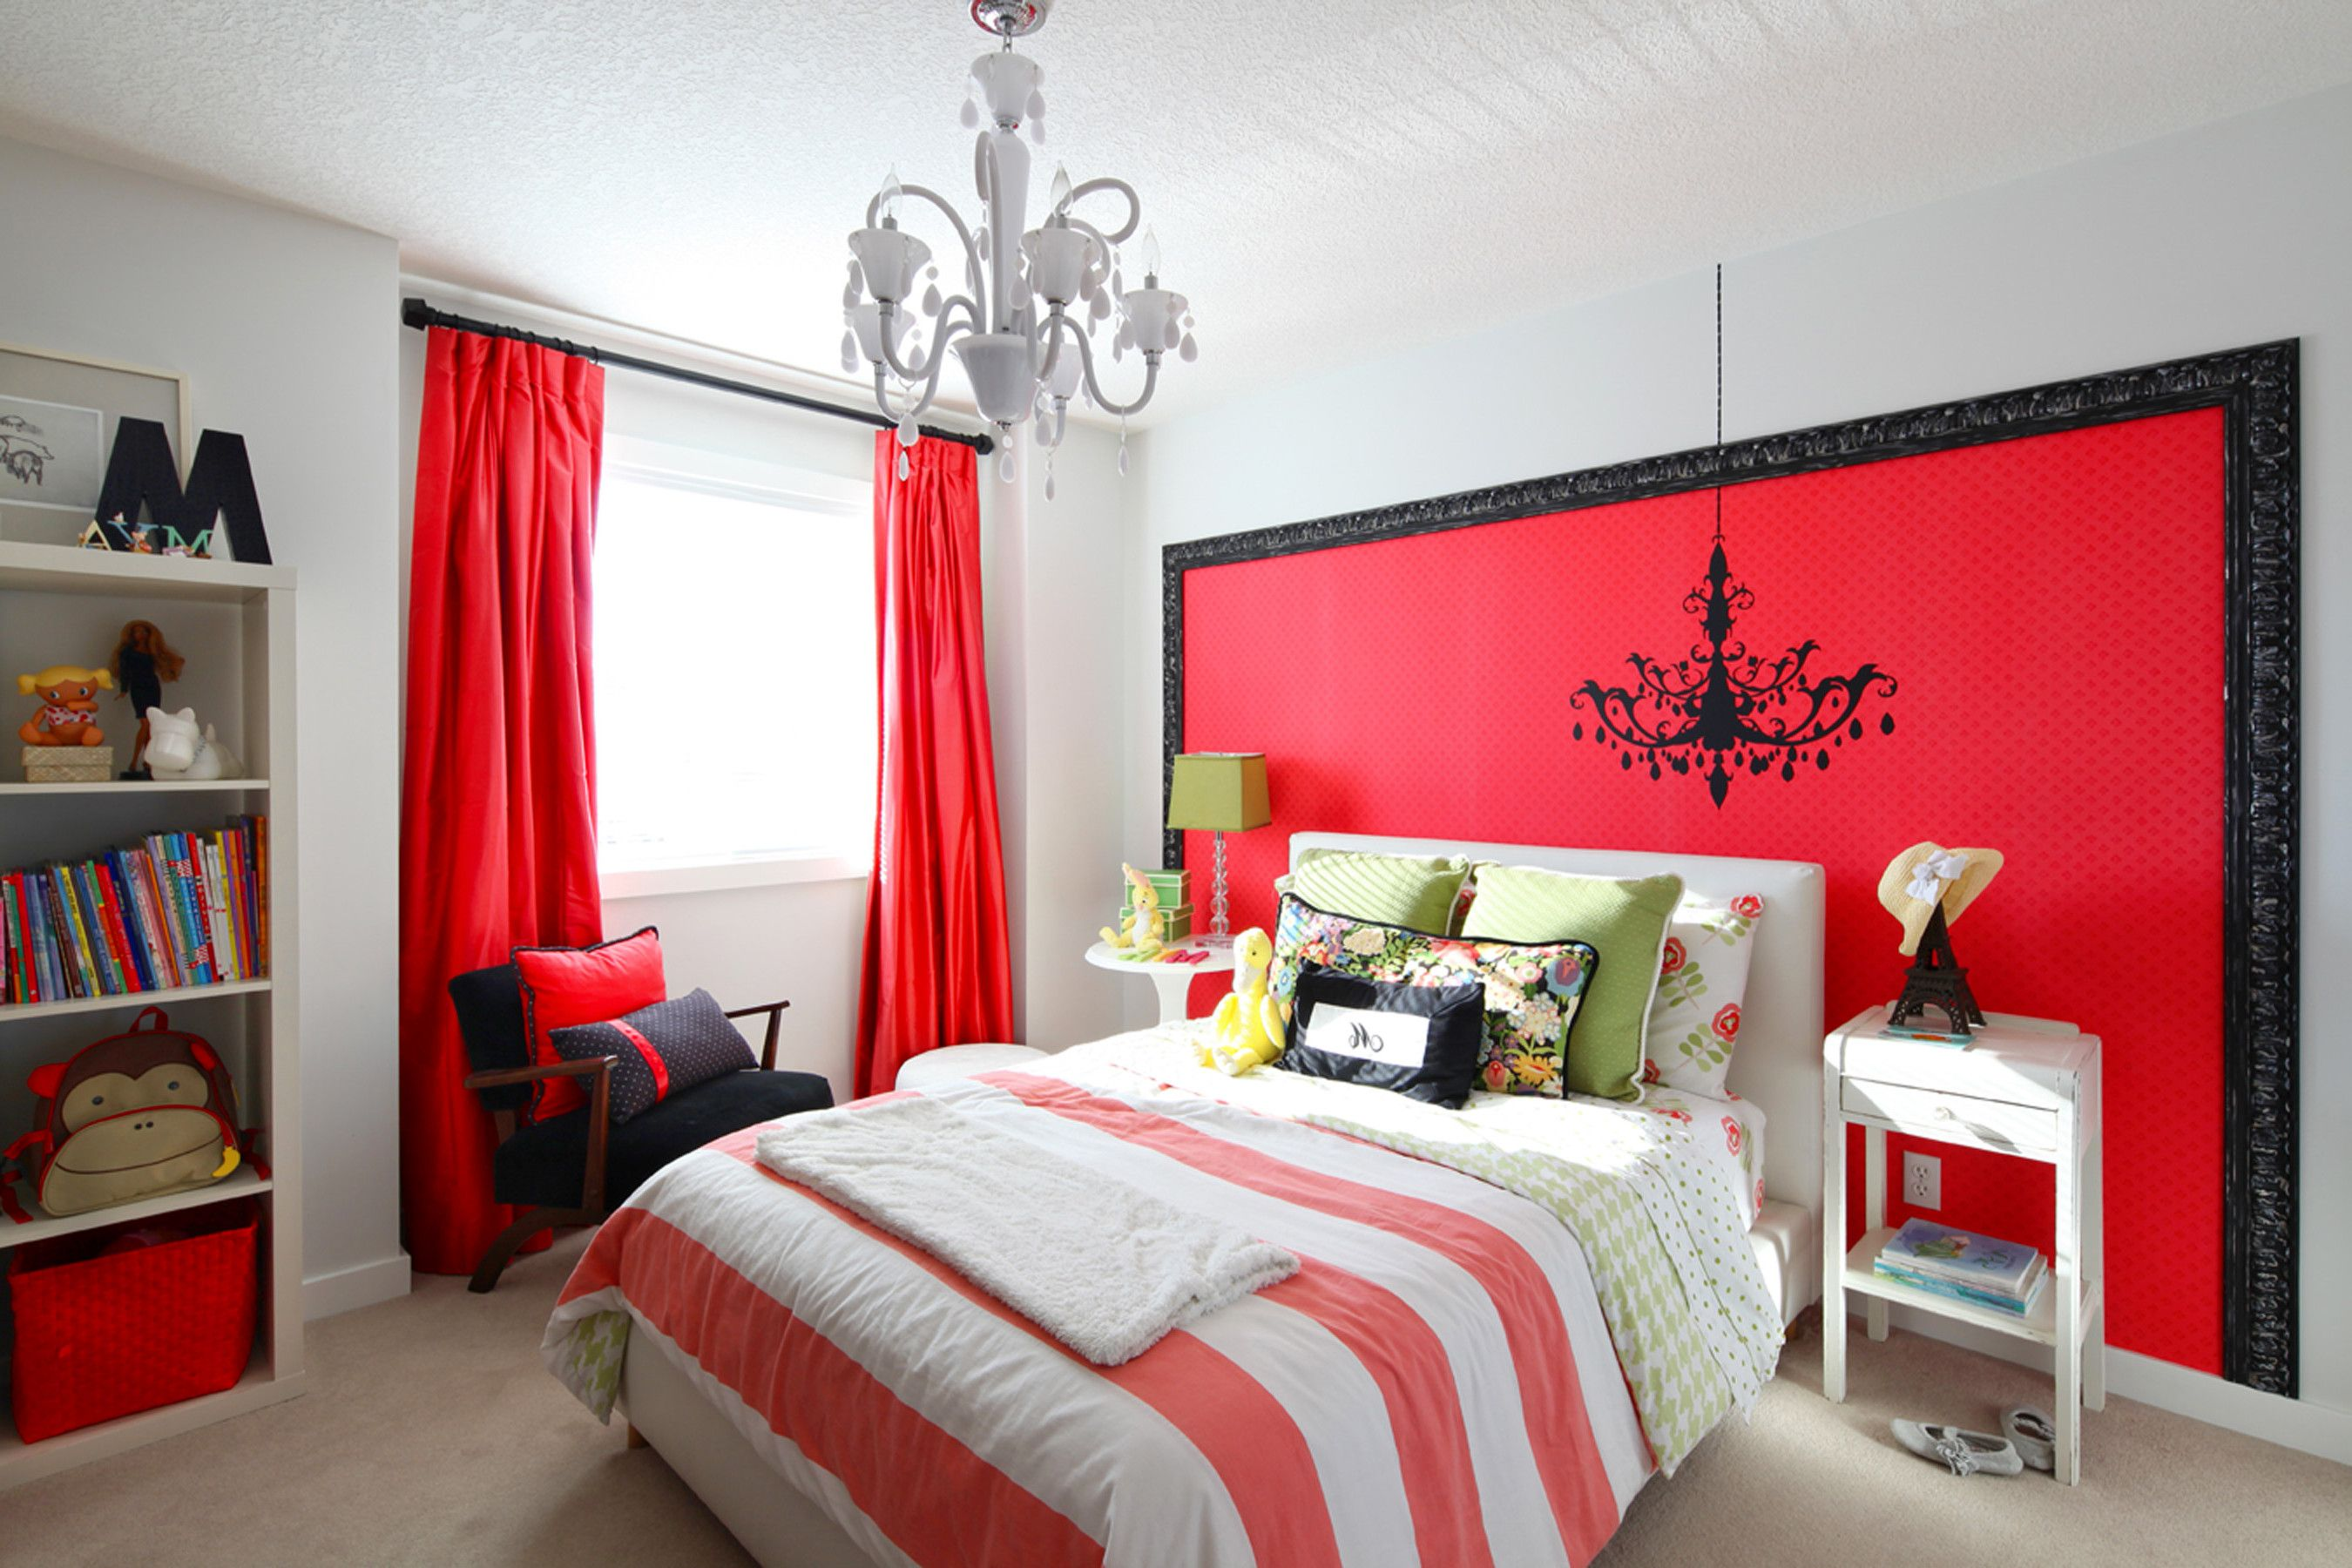 Vibrant Red Girls Rooms Theme In White Walls Light Gray And Pretty